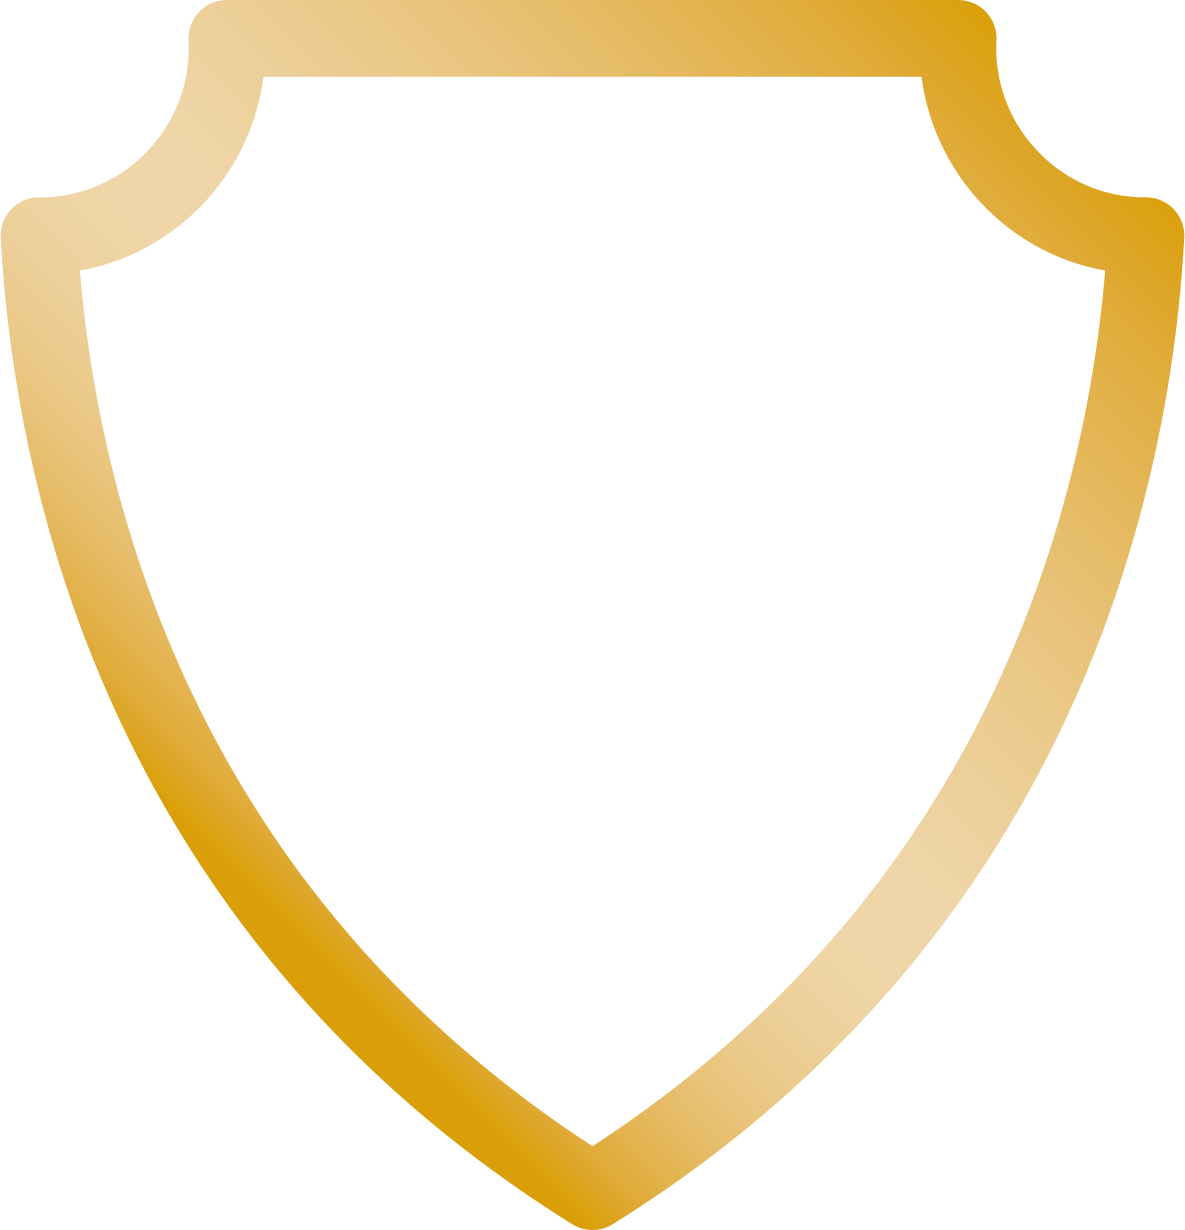 web shield png